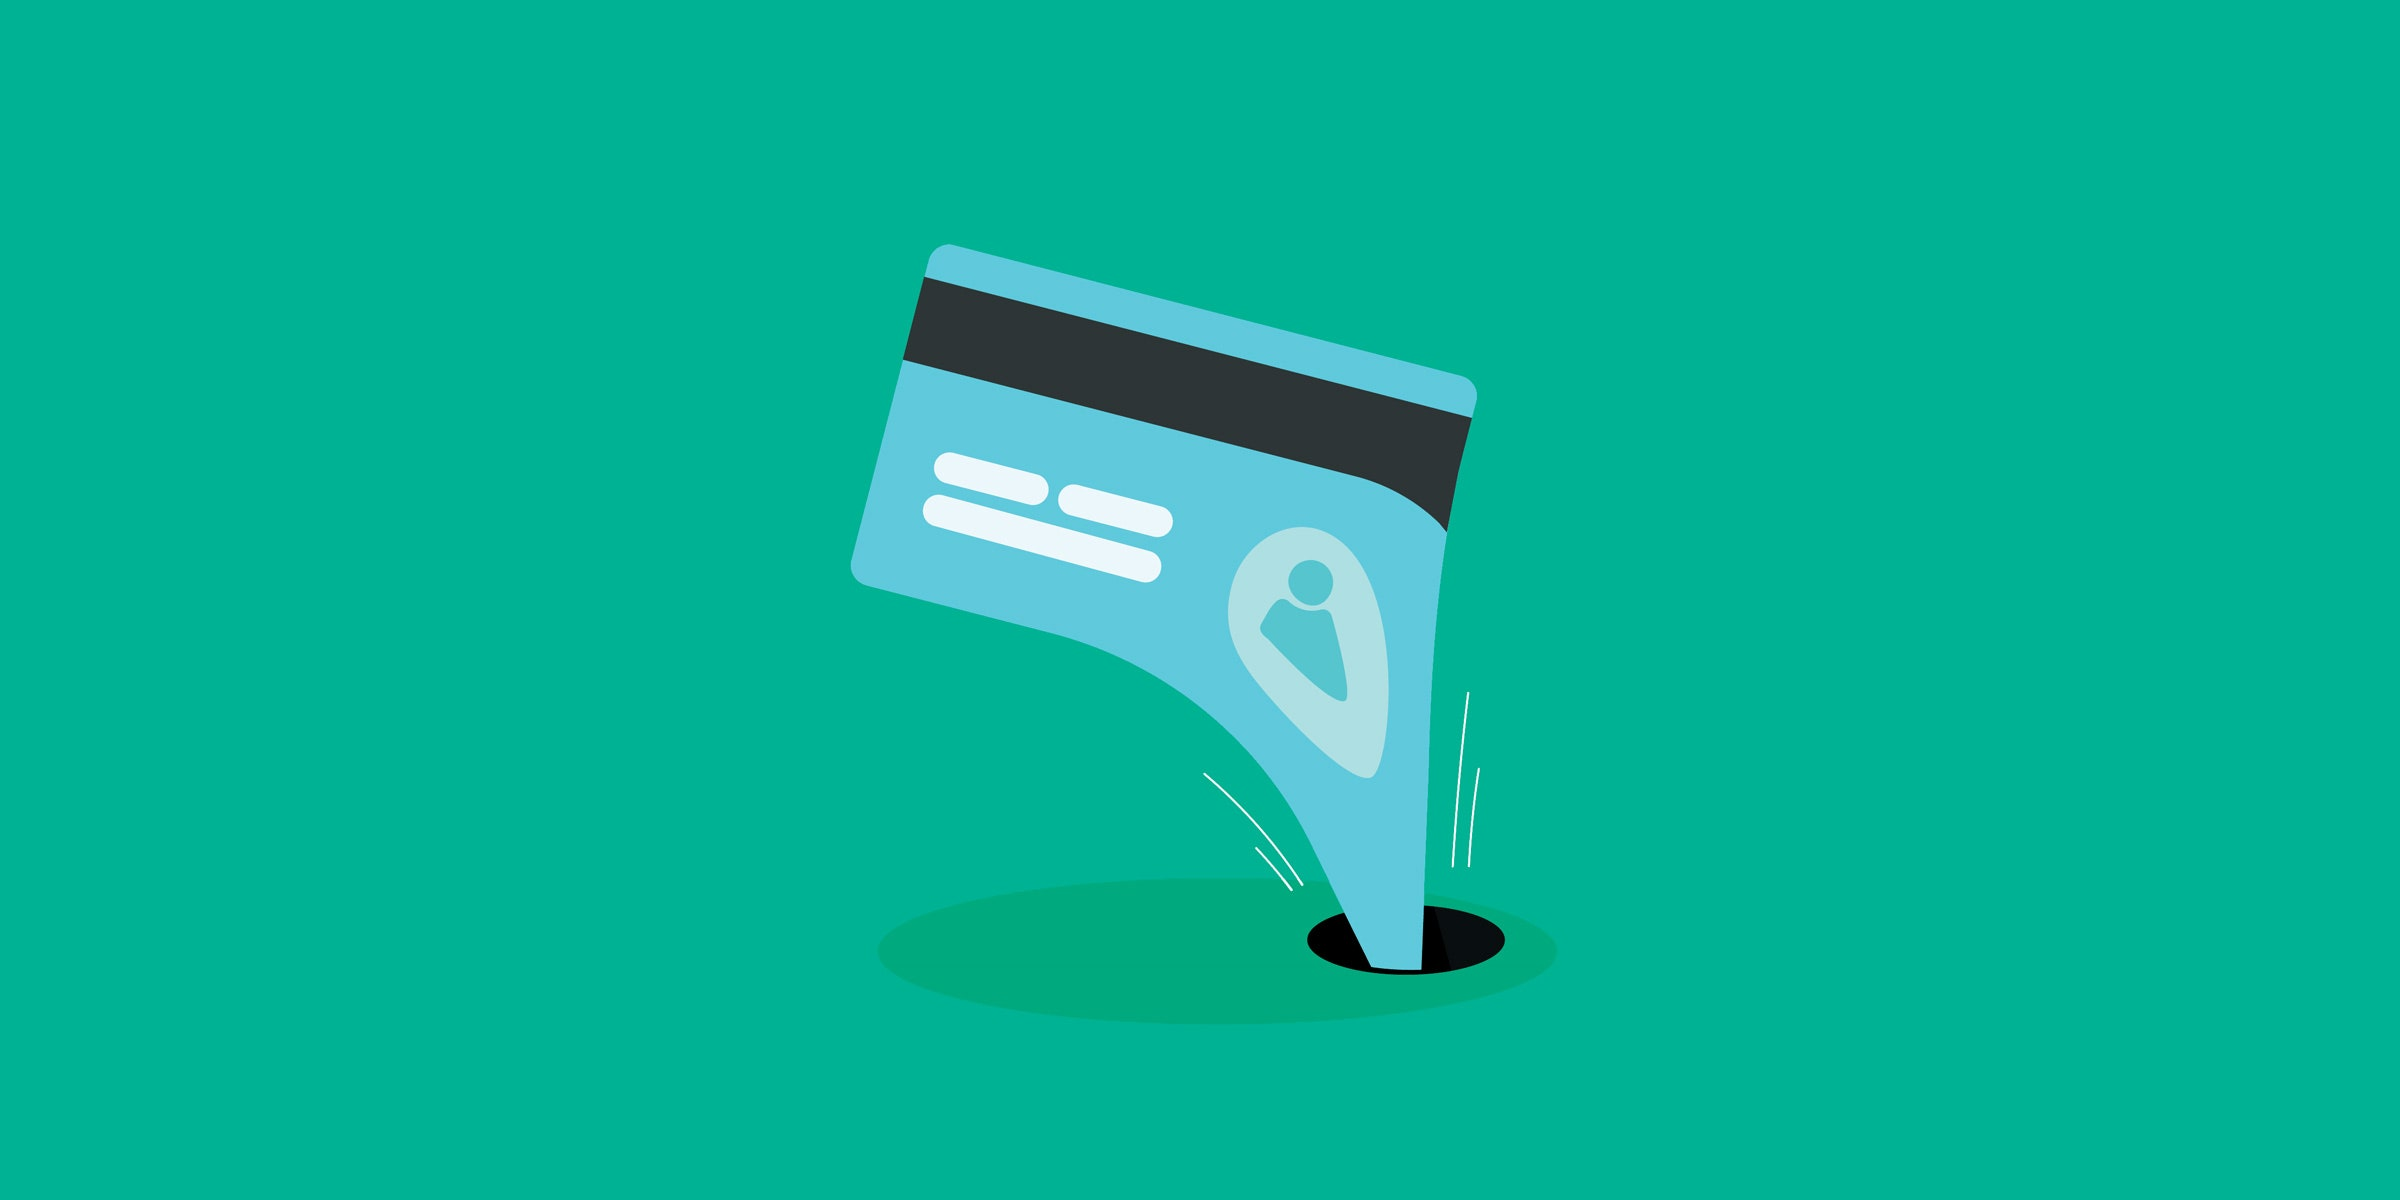 The perfect formulation to Steer clear of Phishing Emails and Scams